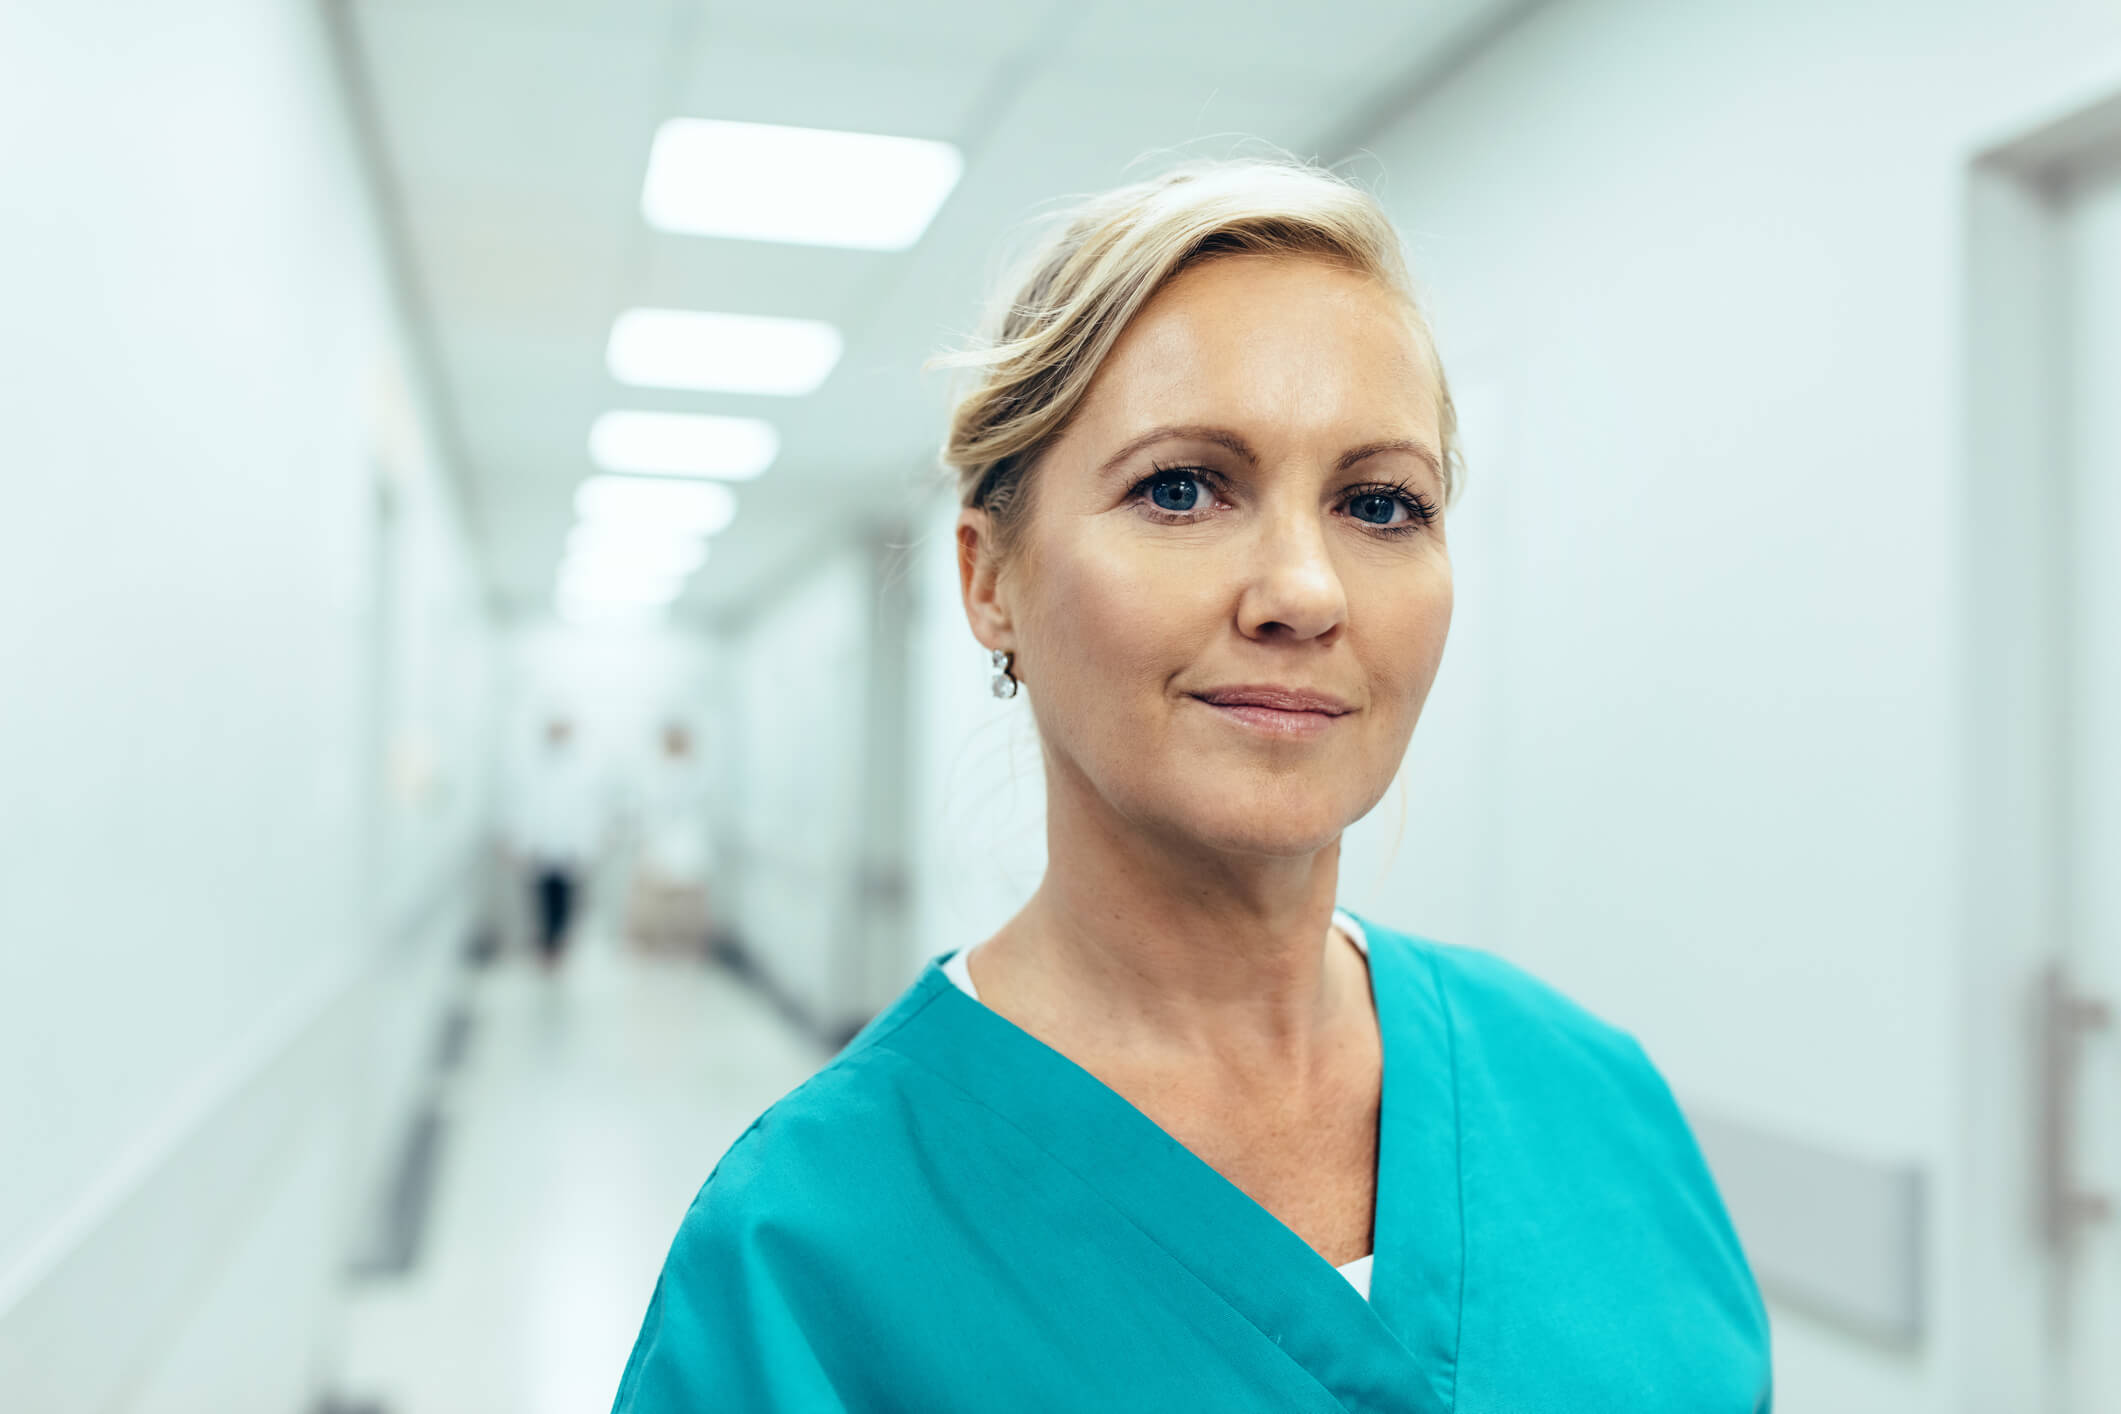 Close up portrait of female healthcare worker standing in hospital corridor. Caucasian woman in hospital hallway staring at camera.